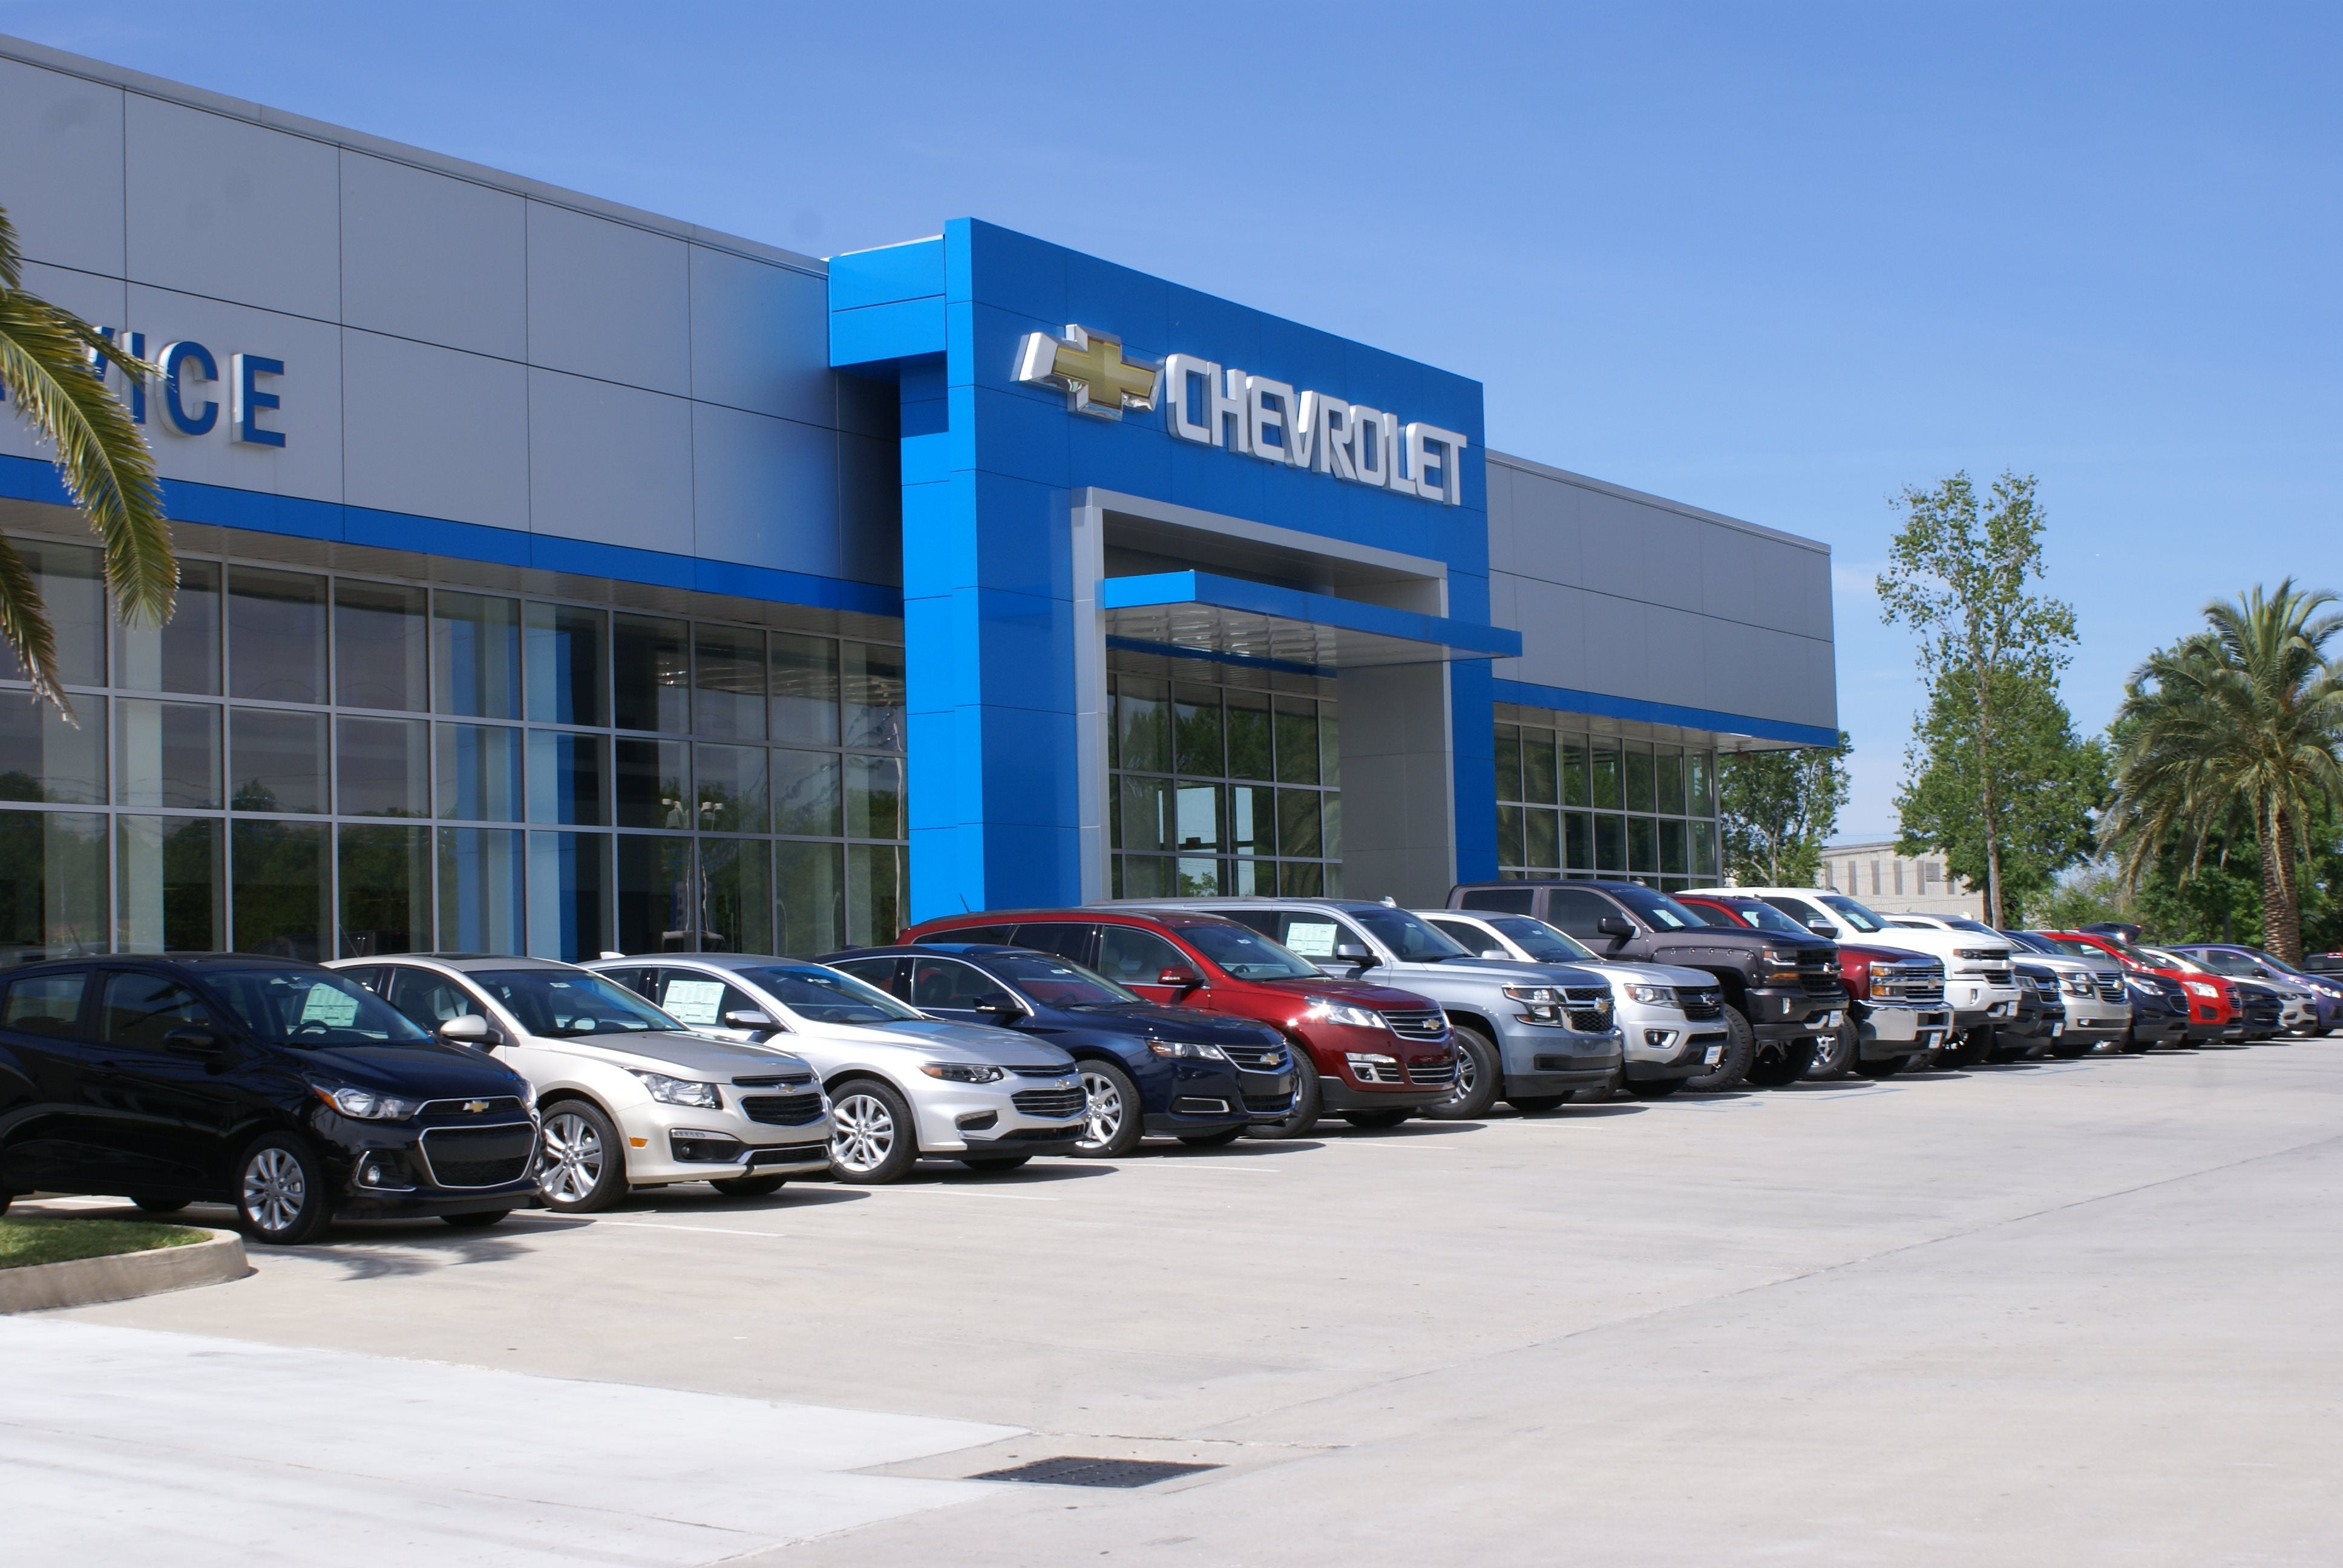 About Service Chevrolet Cadillac